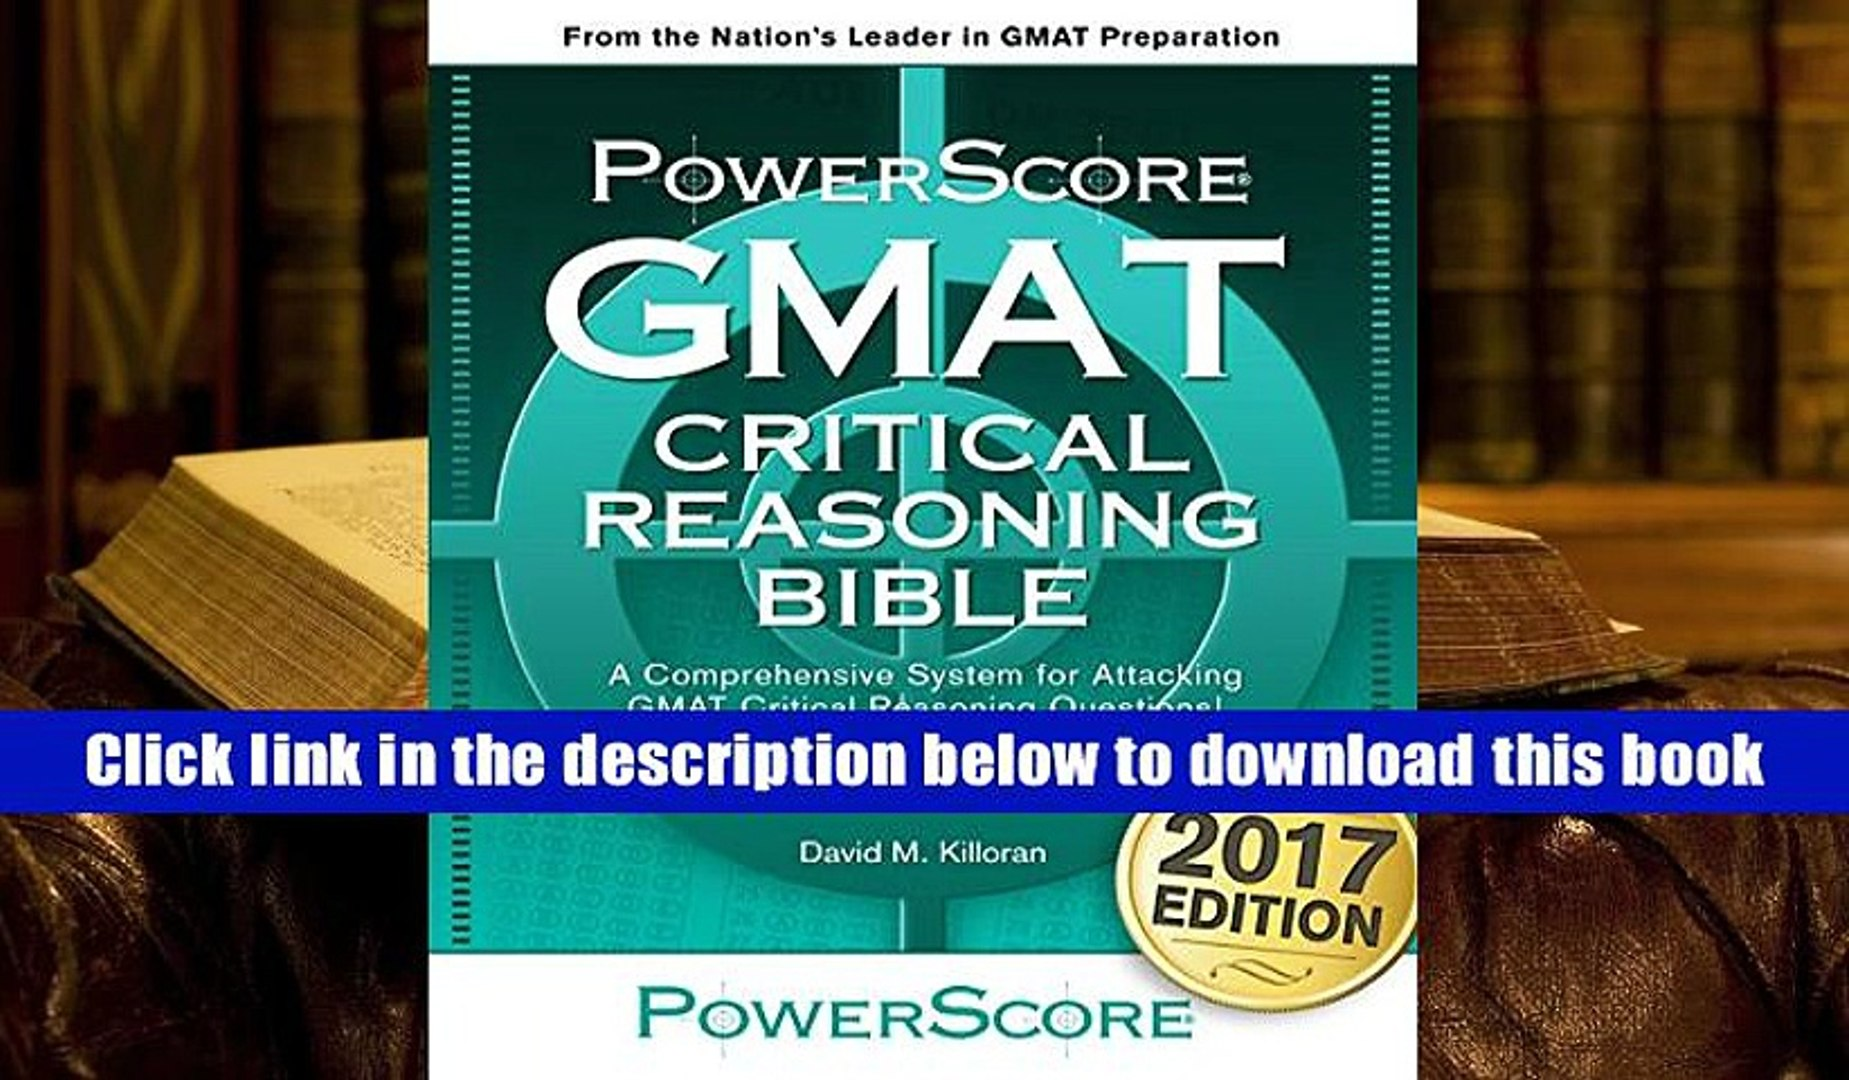 Pdf Download The Powerscore Gmat Critical Reasoning Bible For Trial Video Dailymotion